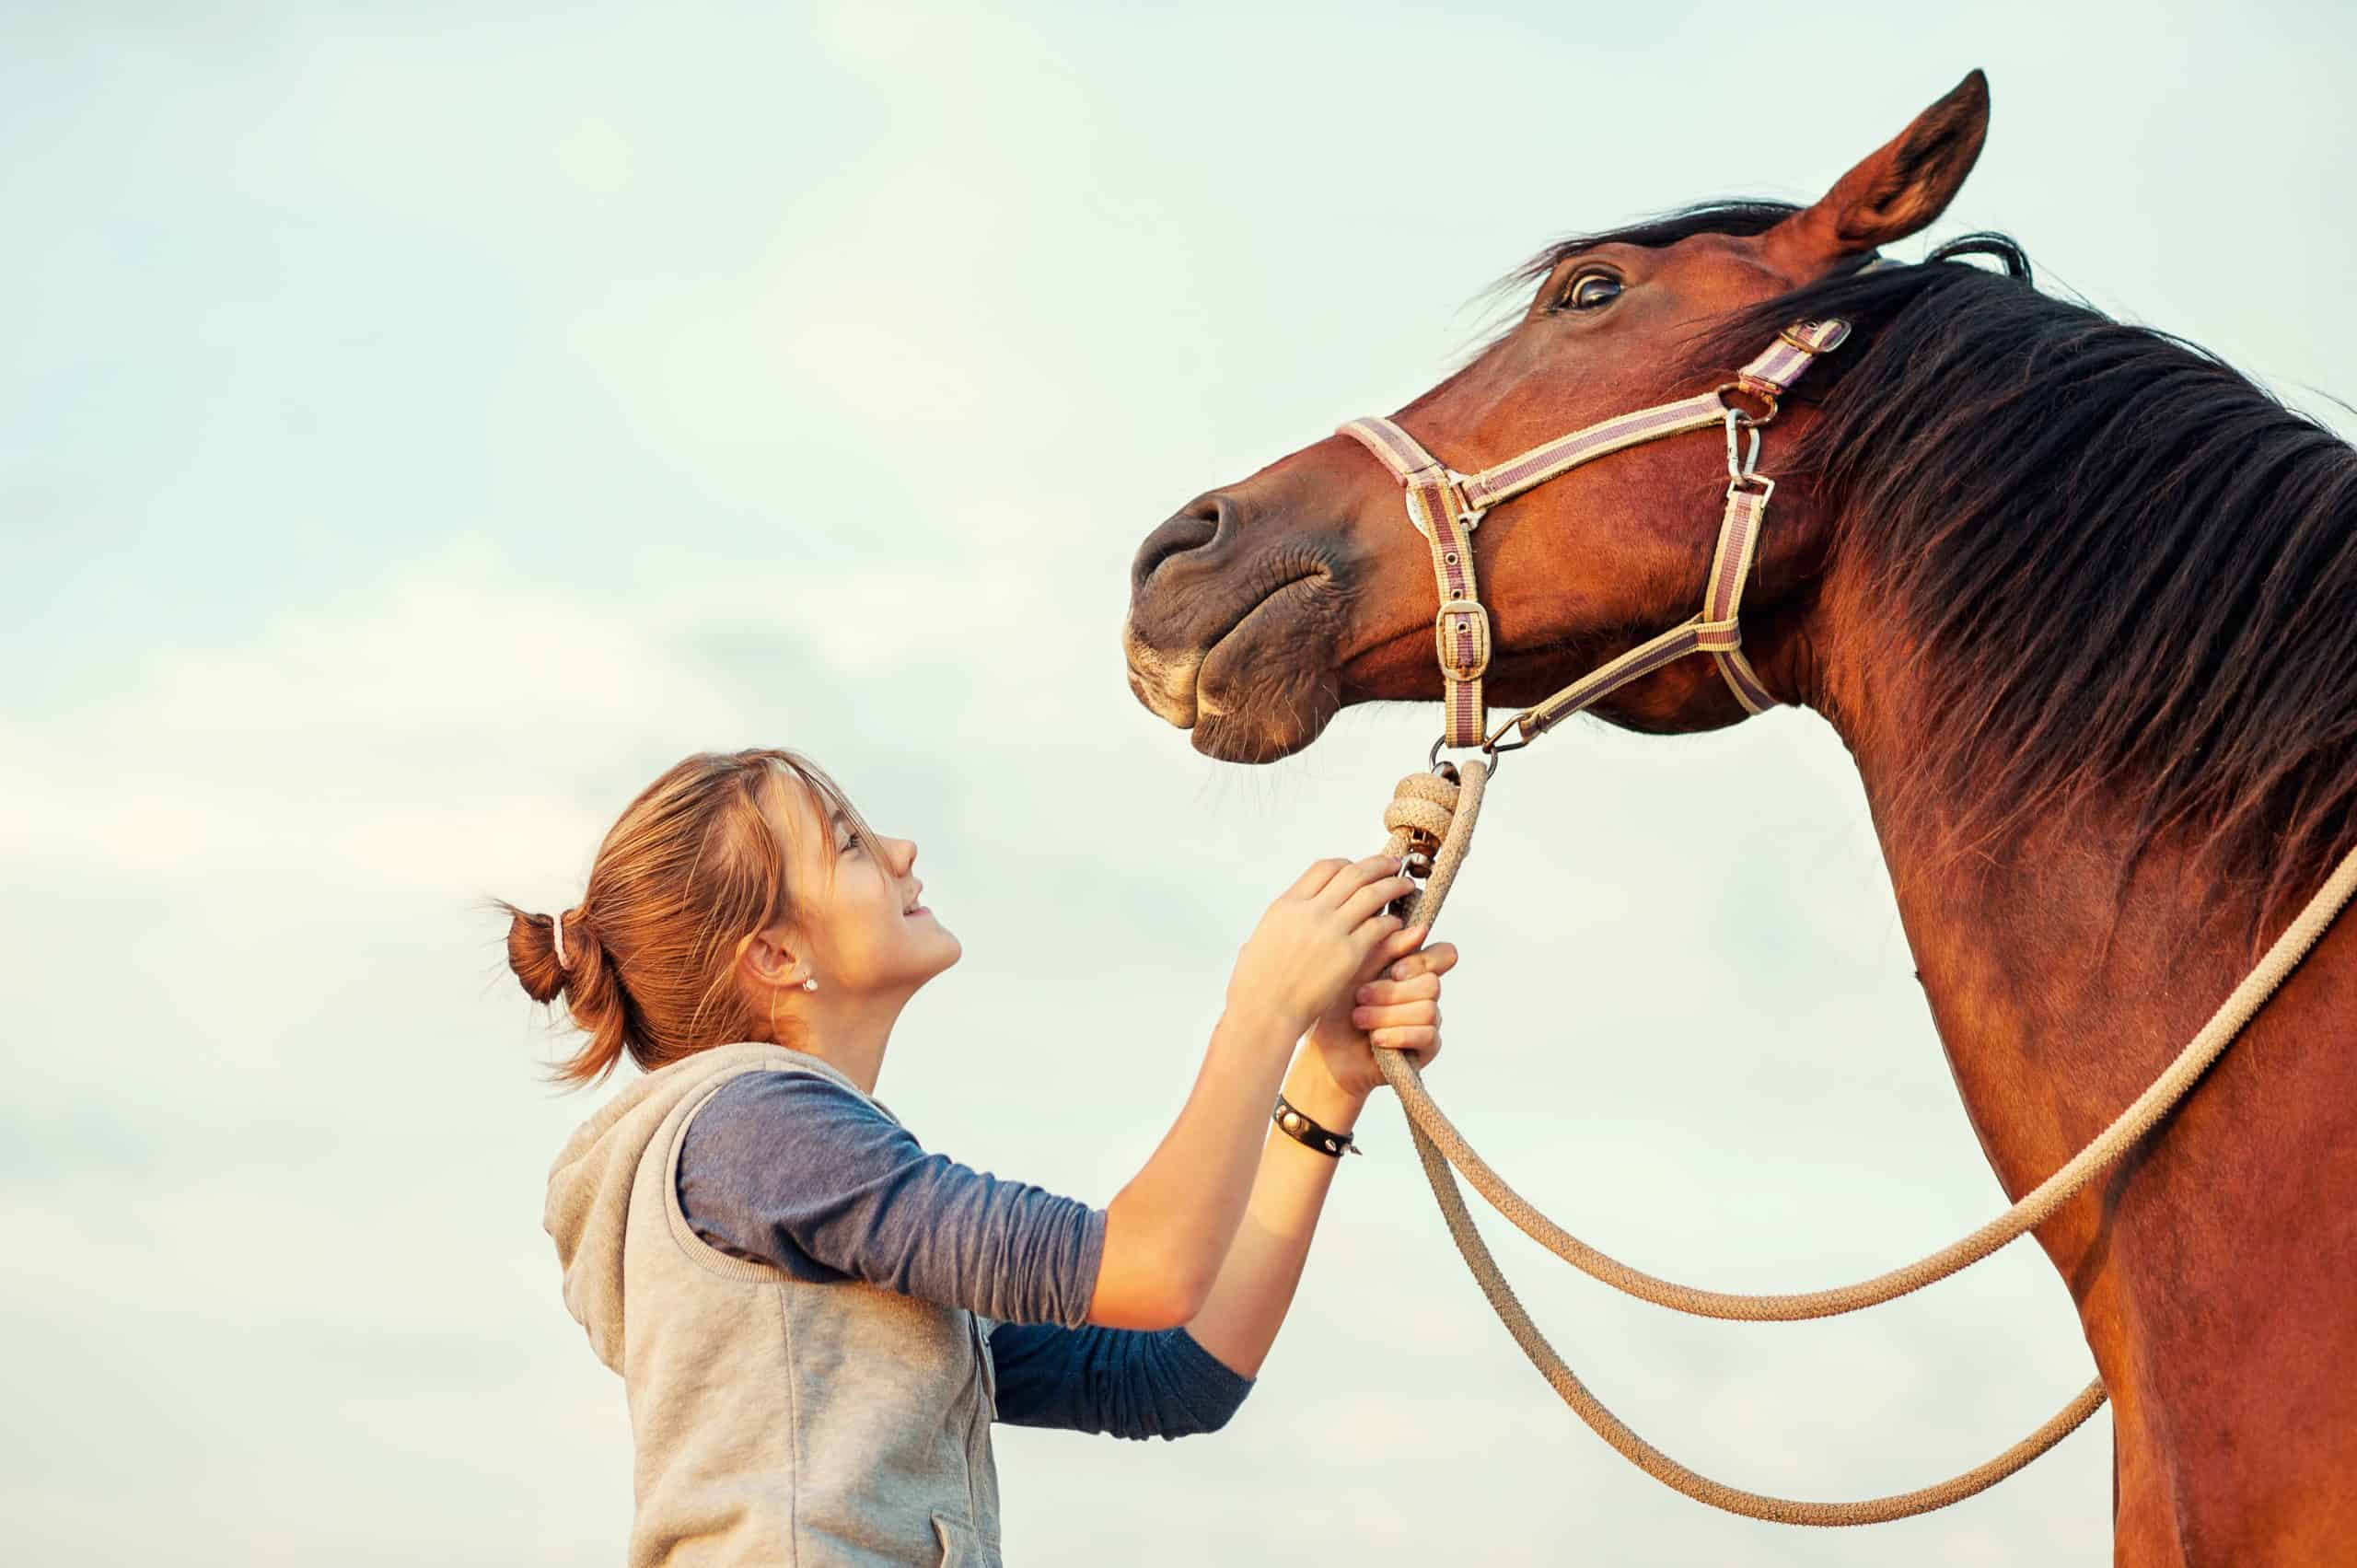 Young cheerful teenage girl calming big spirit chestnut horse. Vibrant multicolored summertime outdoors horizontal image with filter.